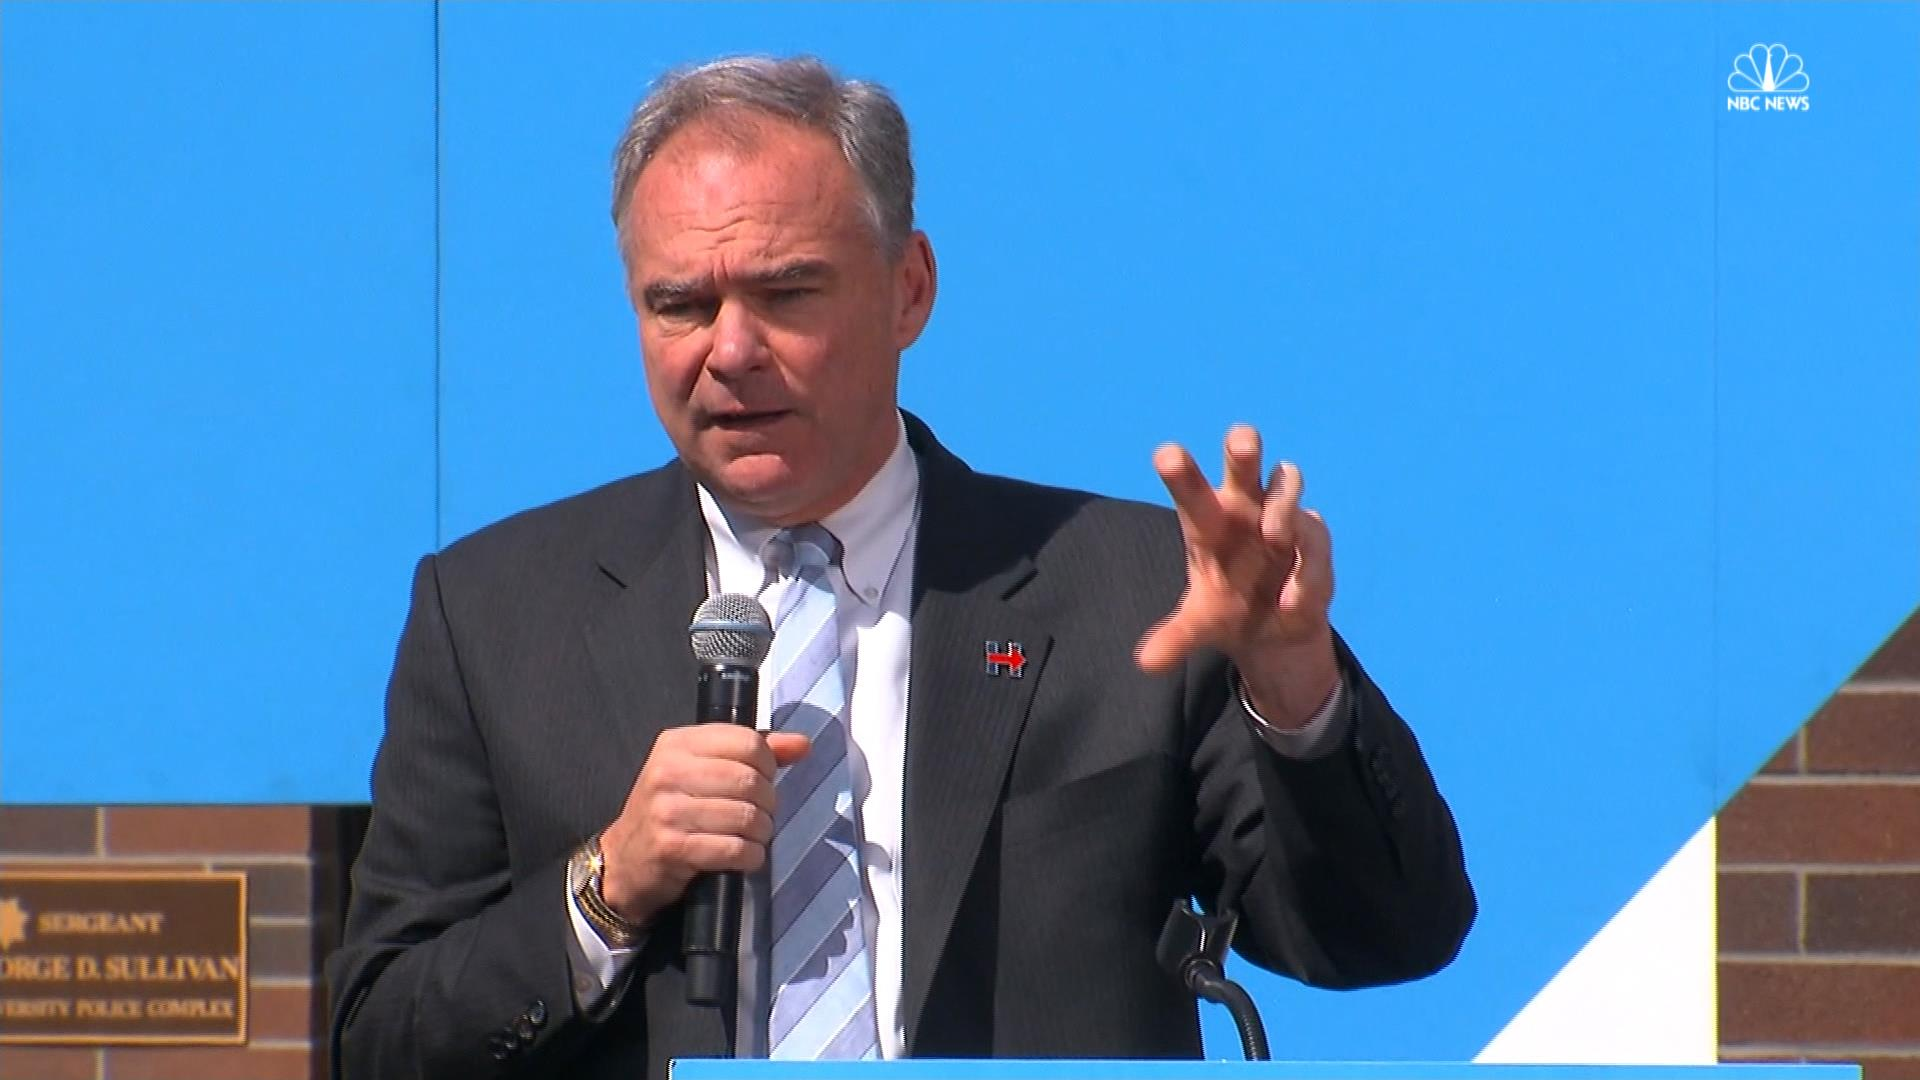 Tim Kaine calls for 'community policing'